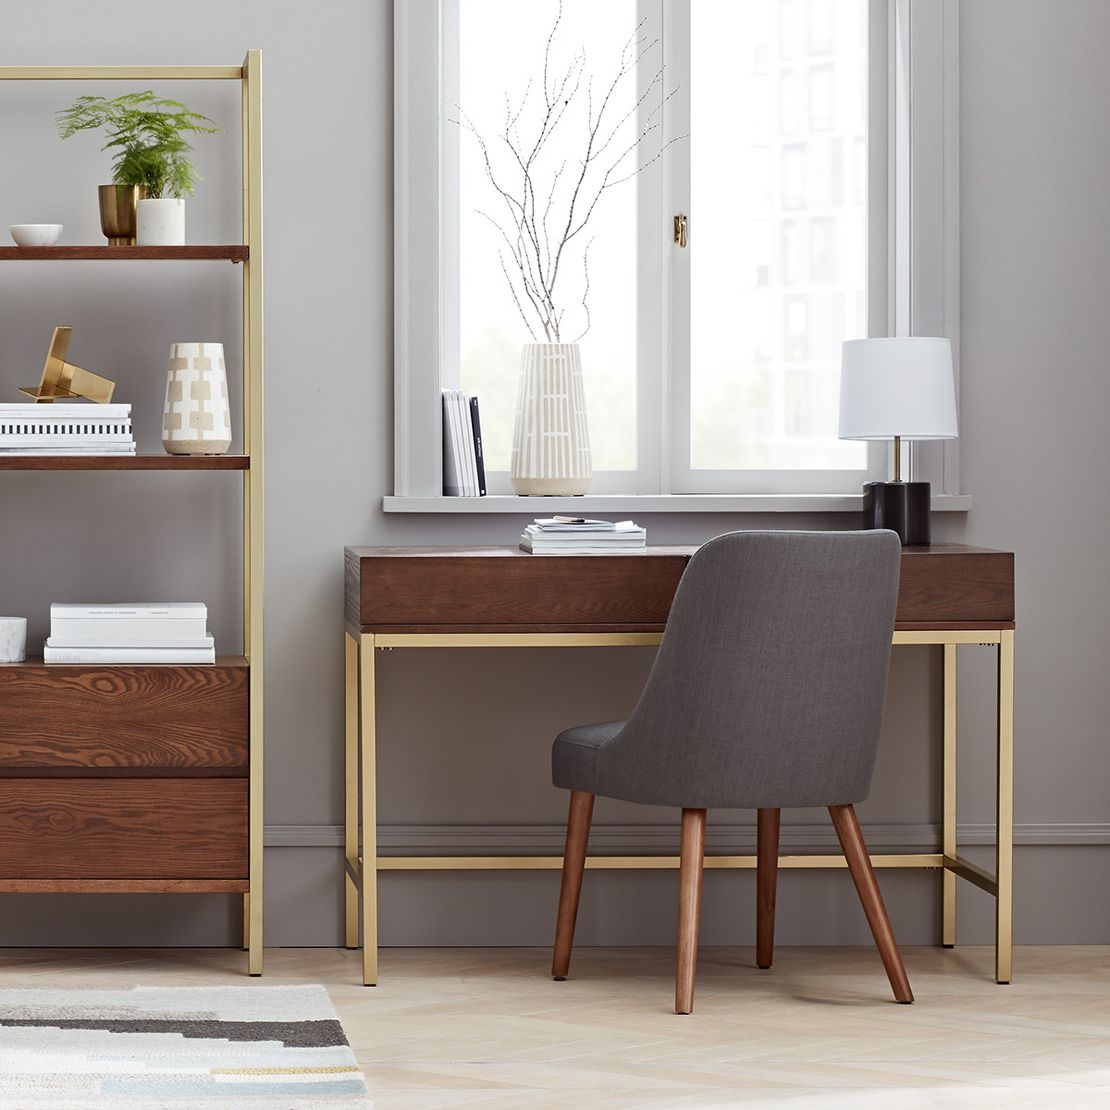 Target Furnitures: Home Office Furniture : Target